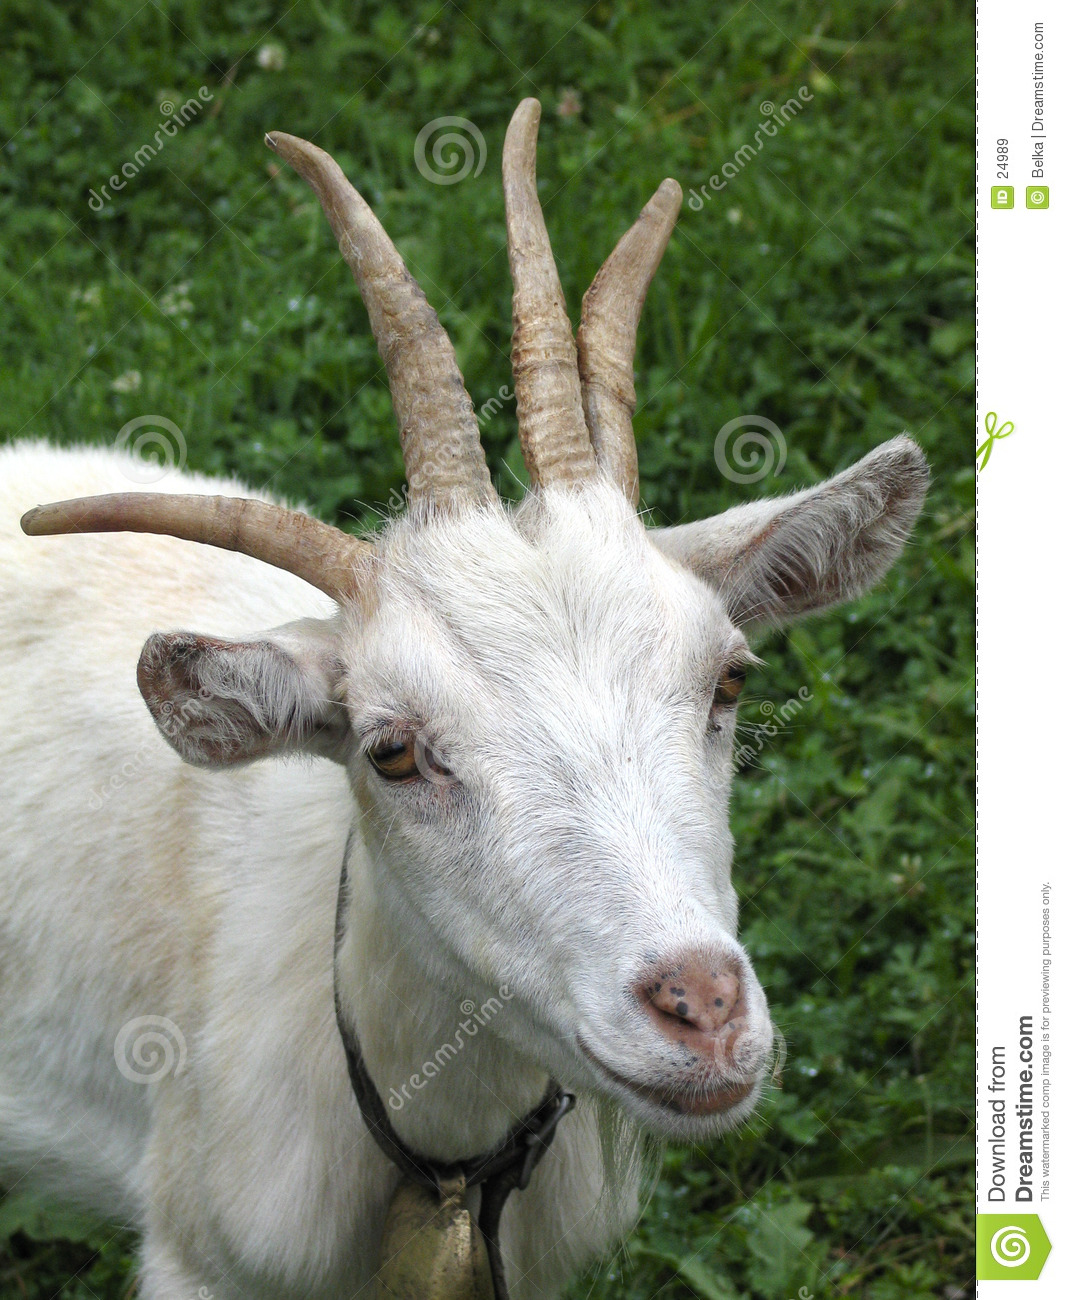 Wild Forest 3d Wallpaper Goat With Four Horns Royalty Free Stock Images Image 24989